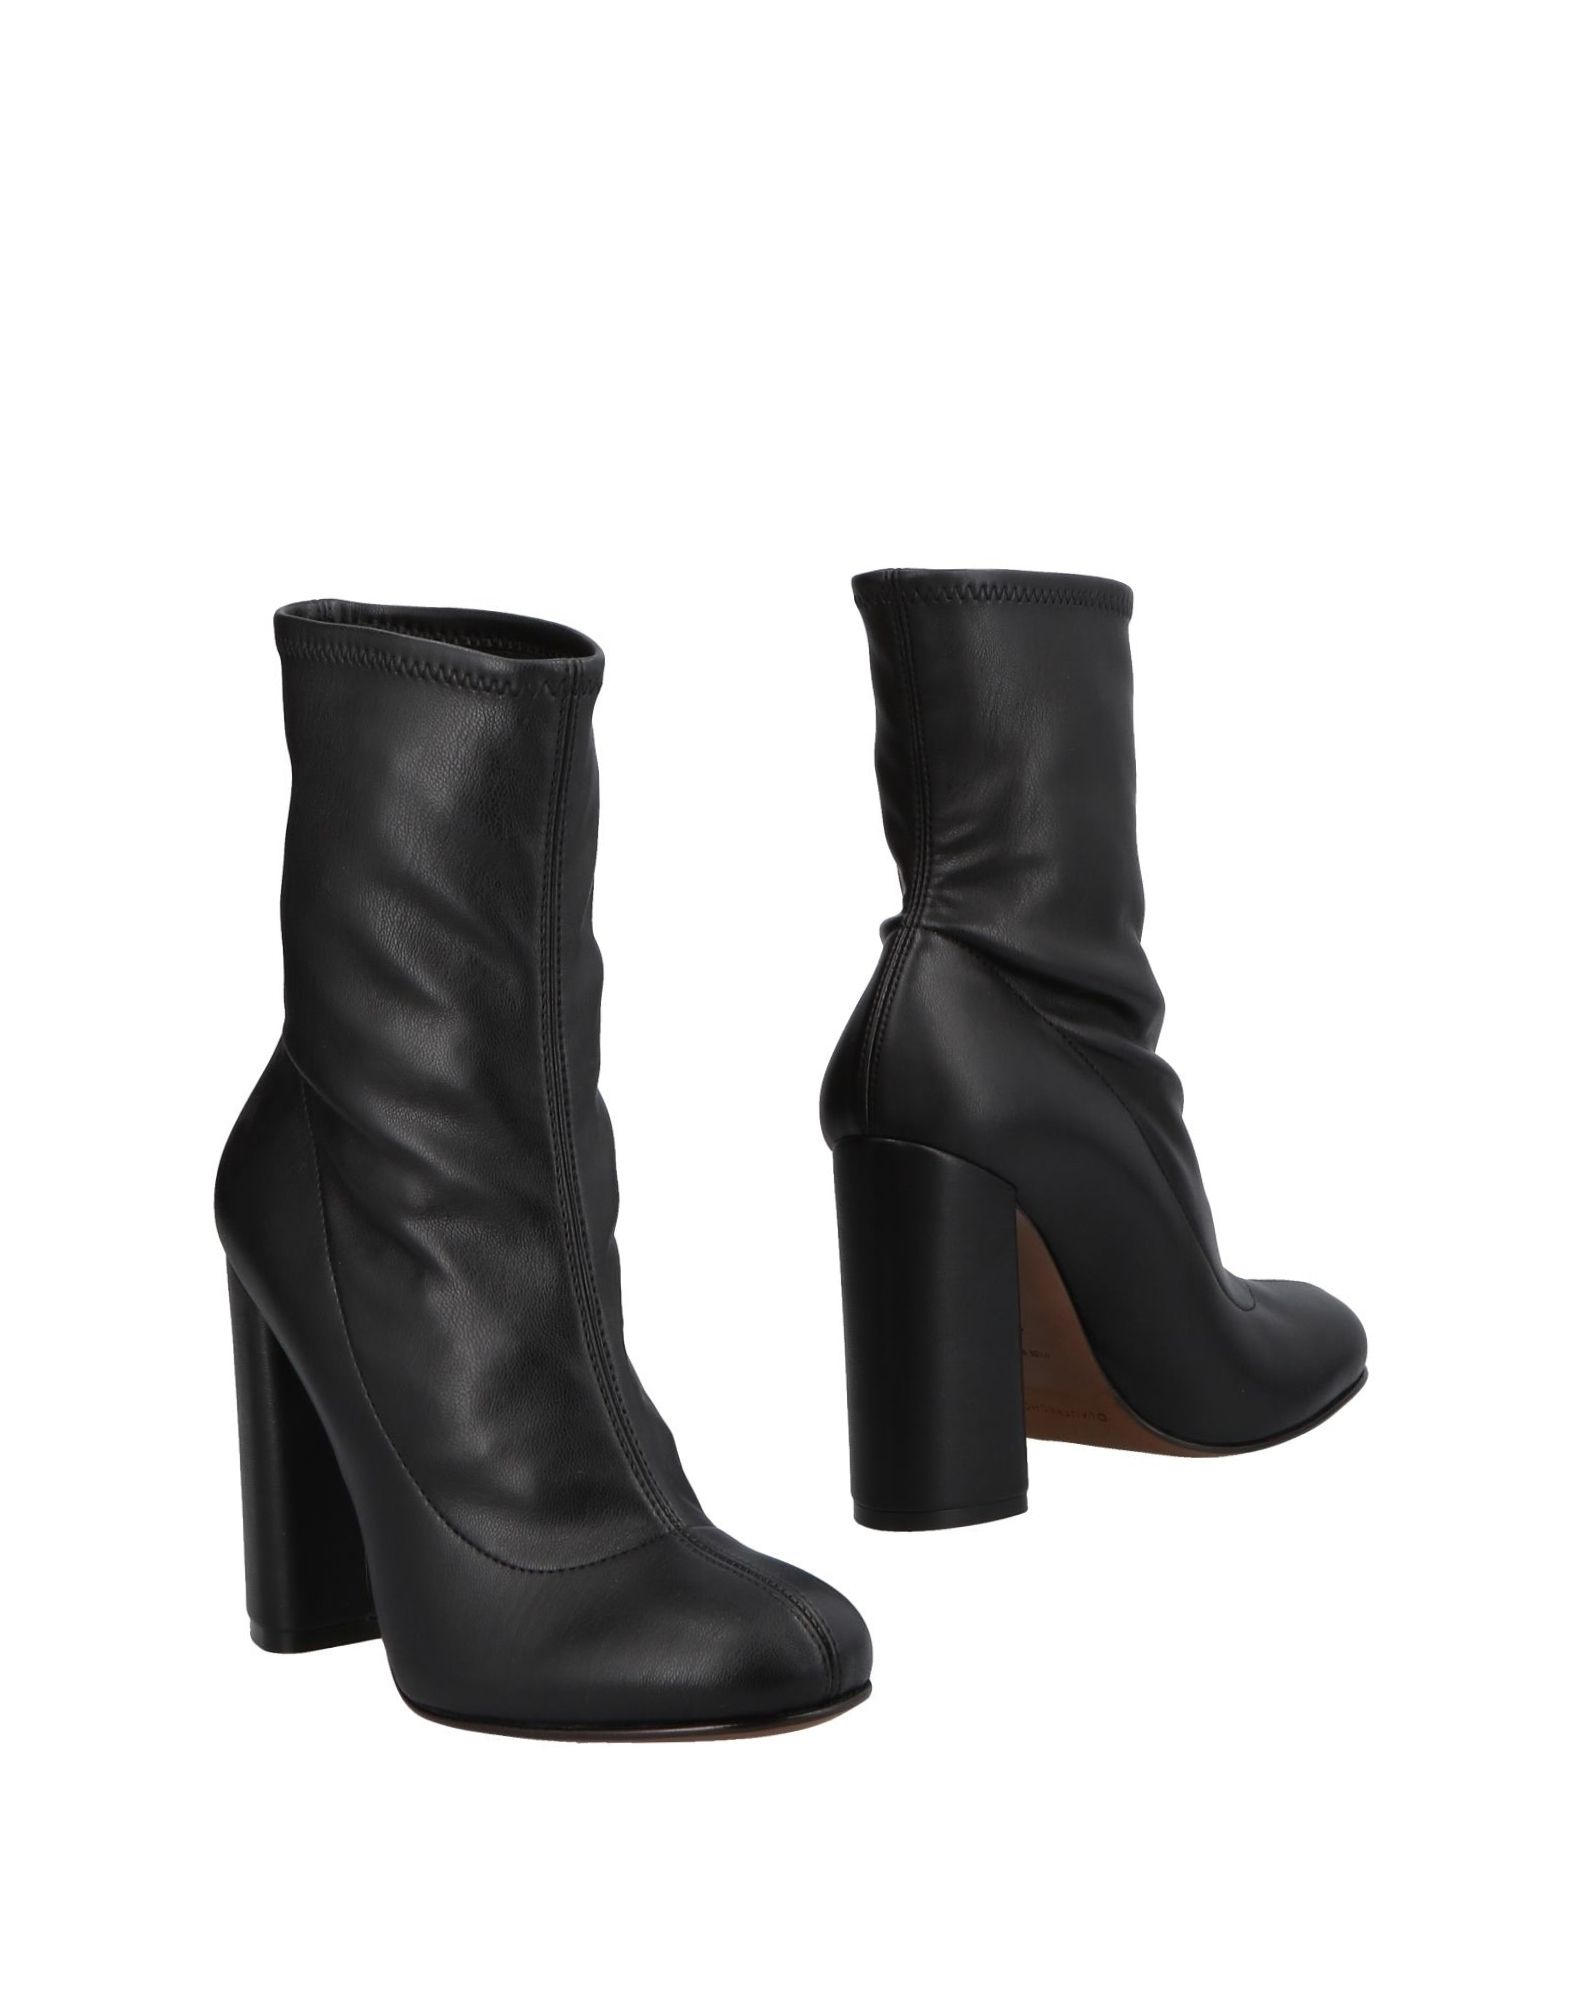 Bottine L' Autre Chose Femme - Bottines L' Autre Chose Noir Super rabais